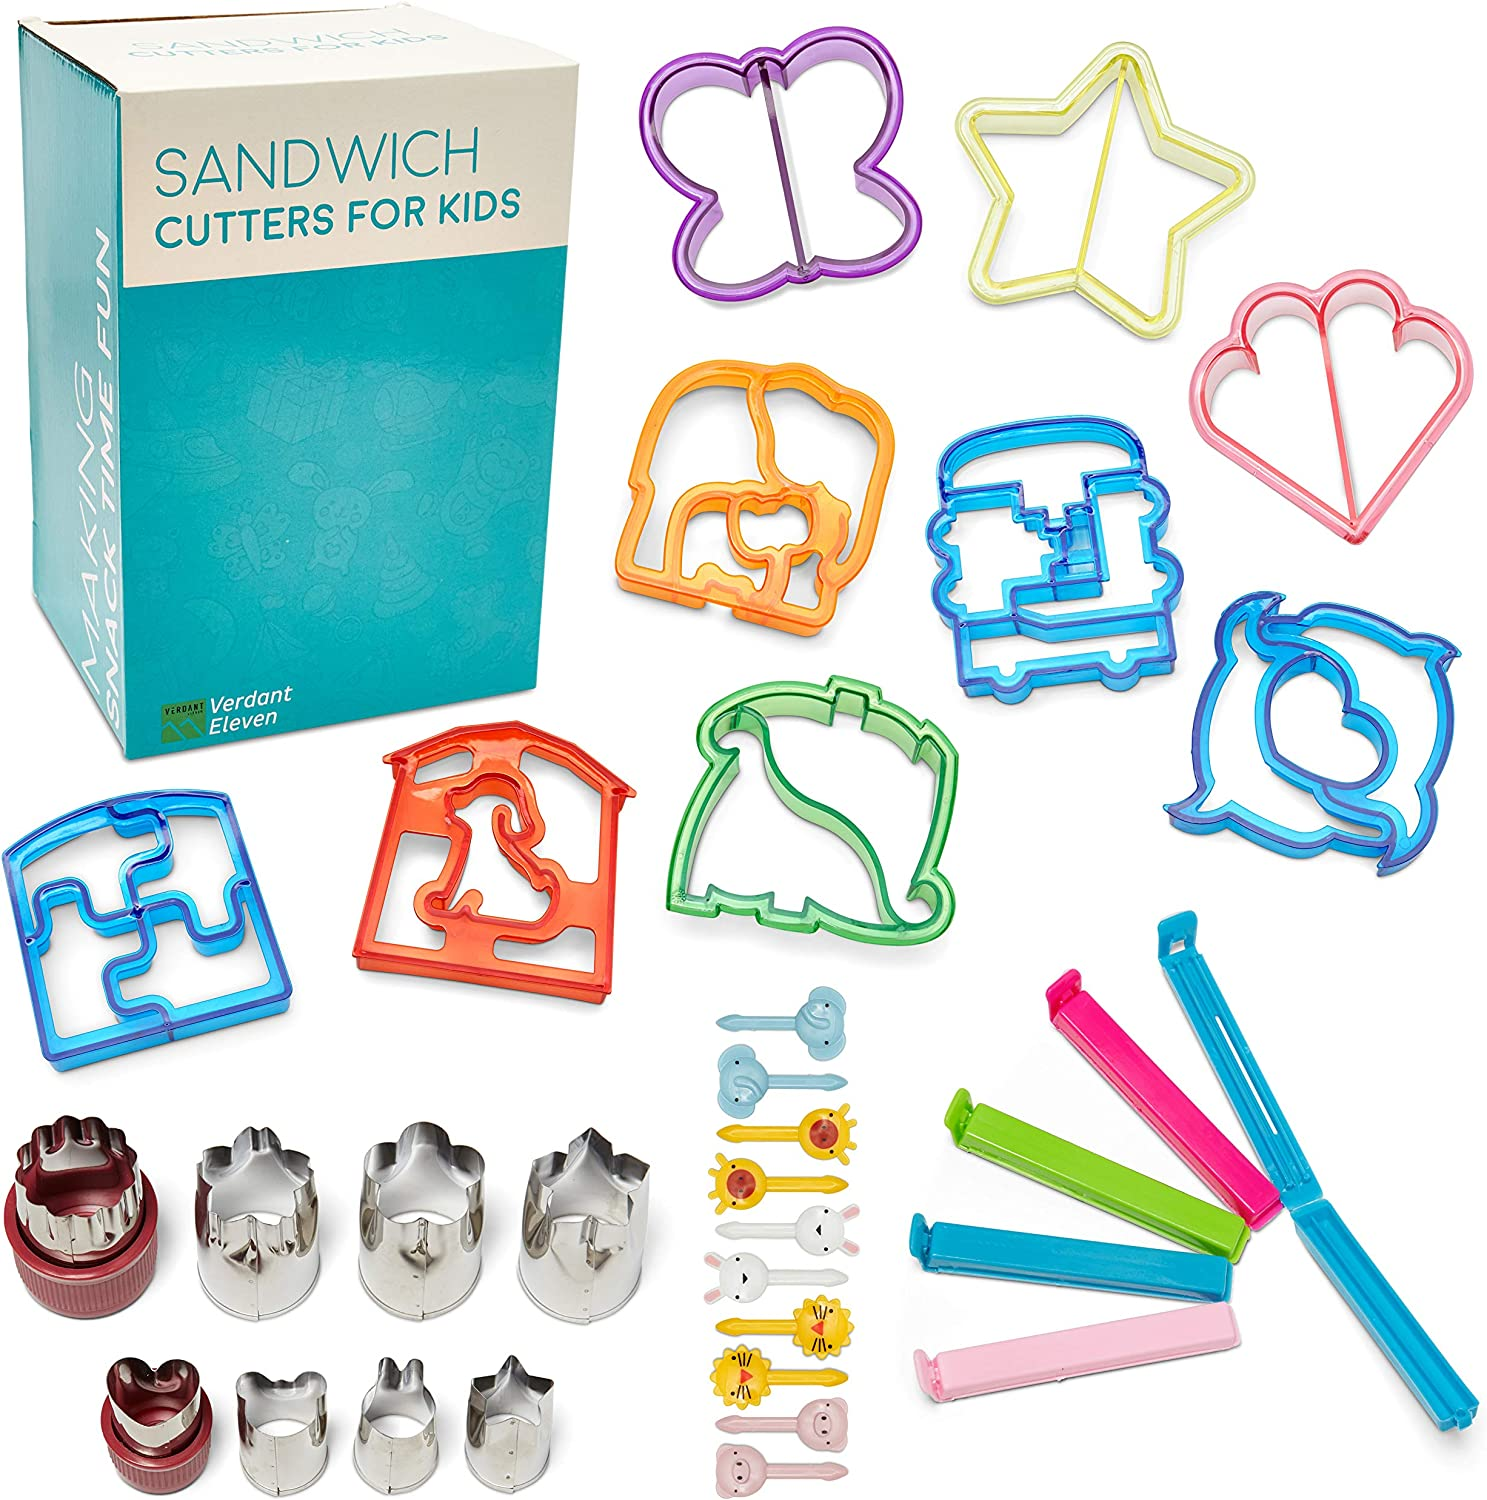 Sandwich Cutter Bundle - 29 Piece Set - Multicolor Plastic Shapes - Cute Toothpicks - Stainless Steel Vegetable & Cheese Cutters - Free Bag Clip Bonus - Fun Lunches - Kid Friendly Bento Box - Animals